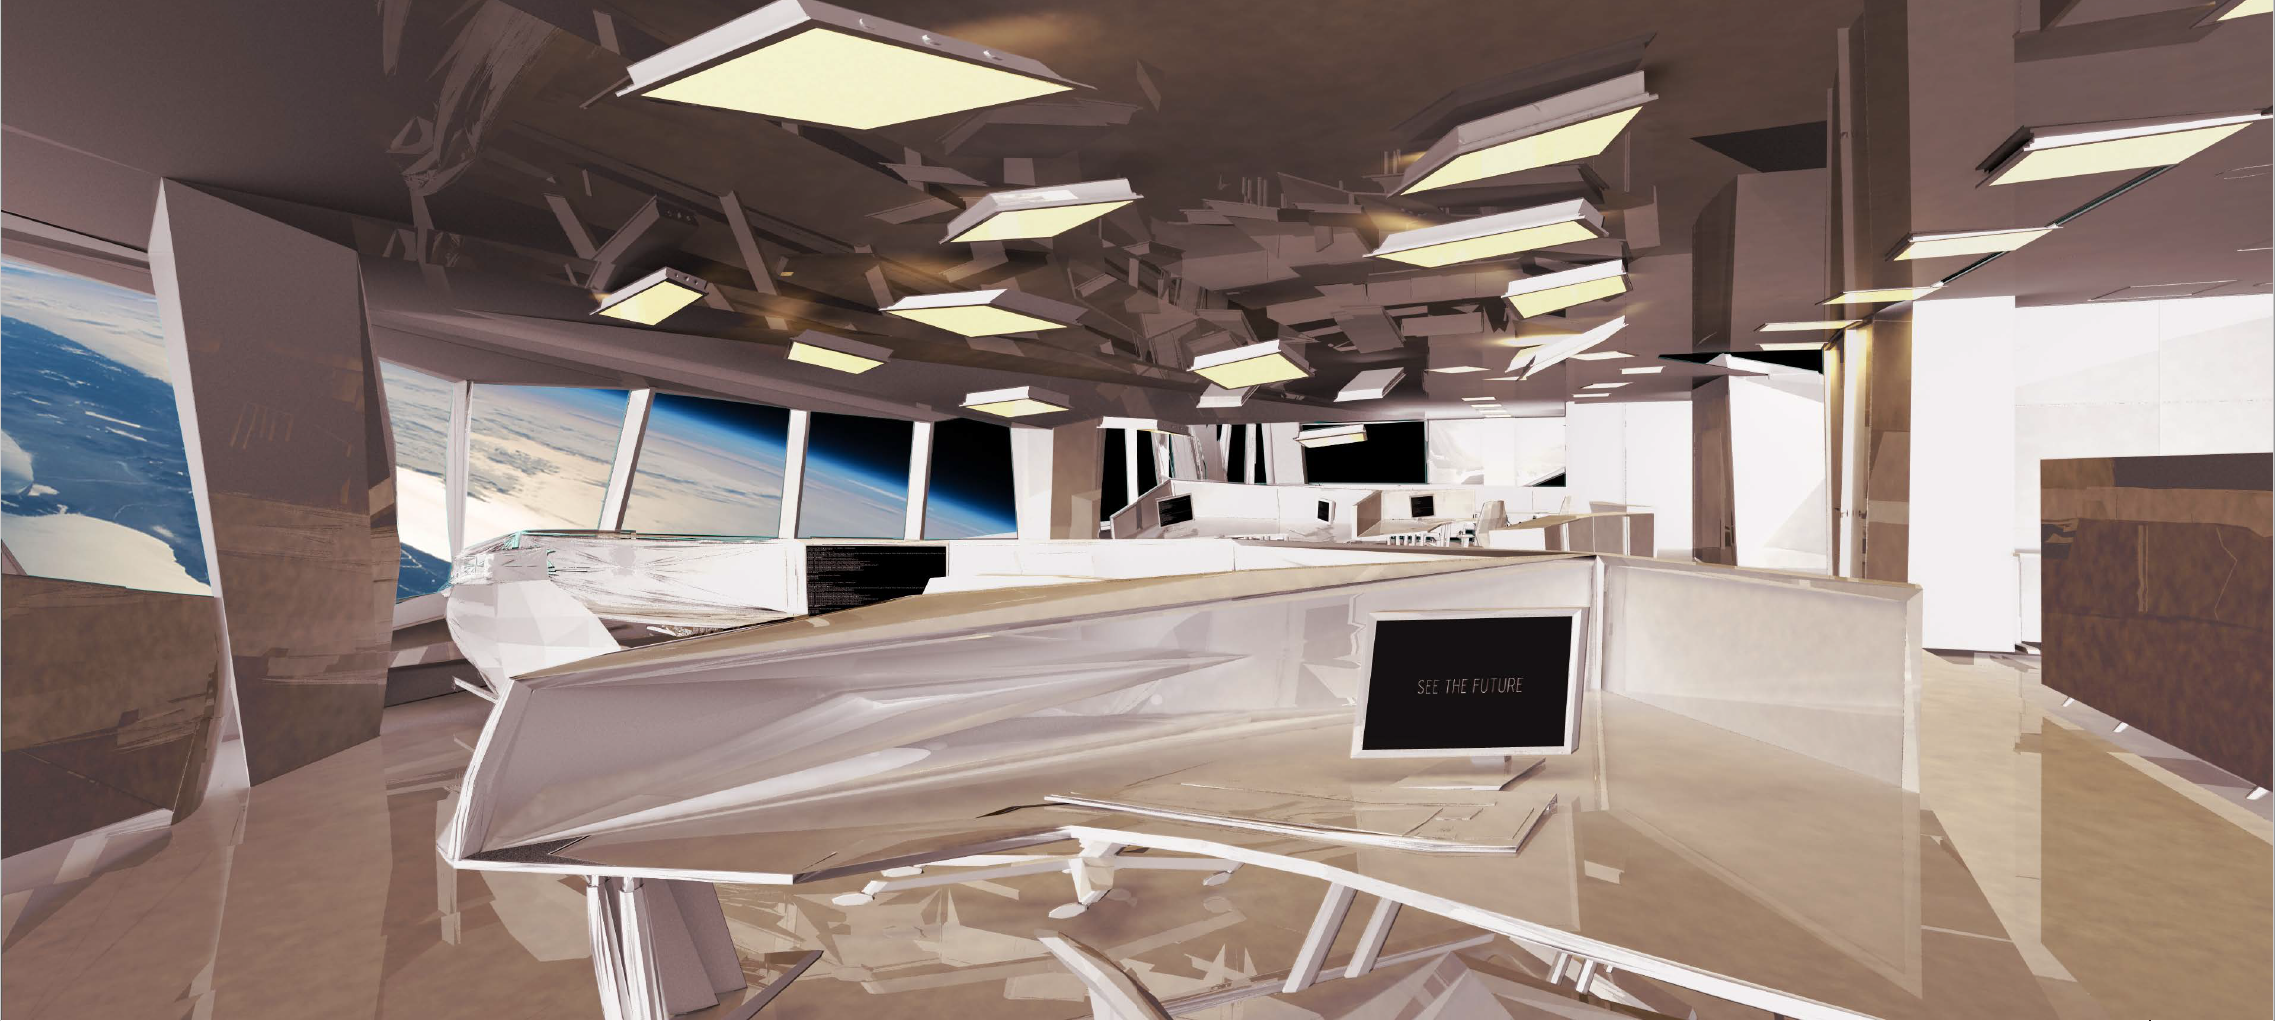 An abstracted office environment based on the 'inspired' spatial characteristics found within Irrational Exuberance: Prologue.